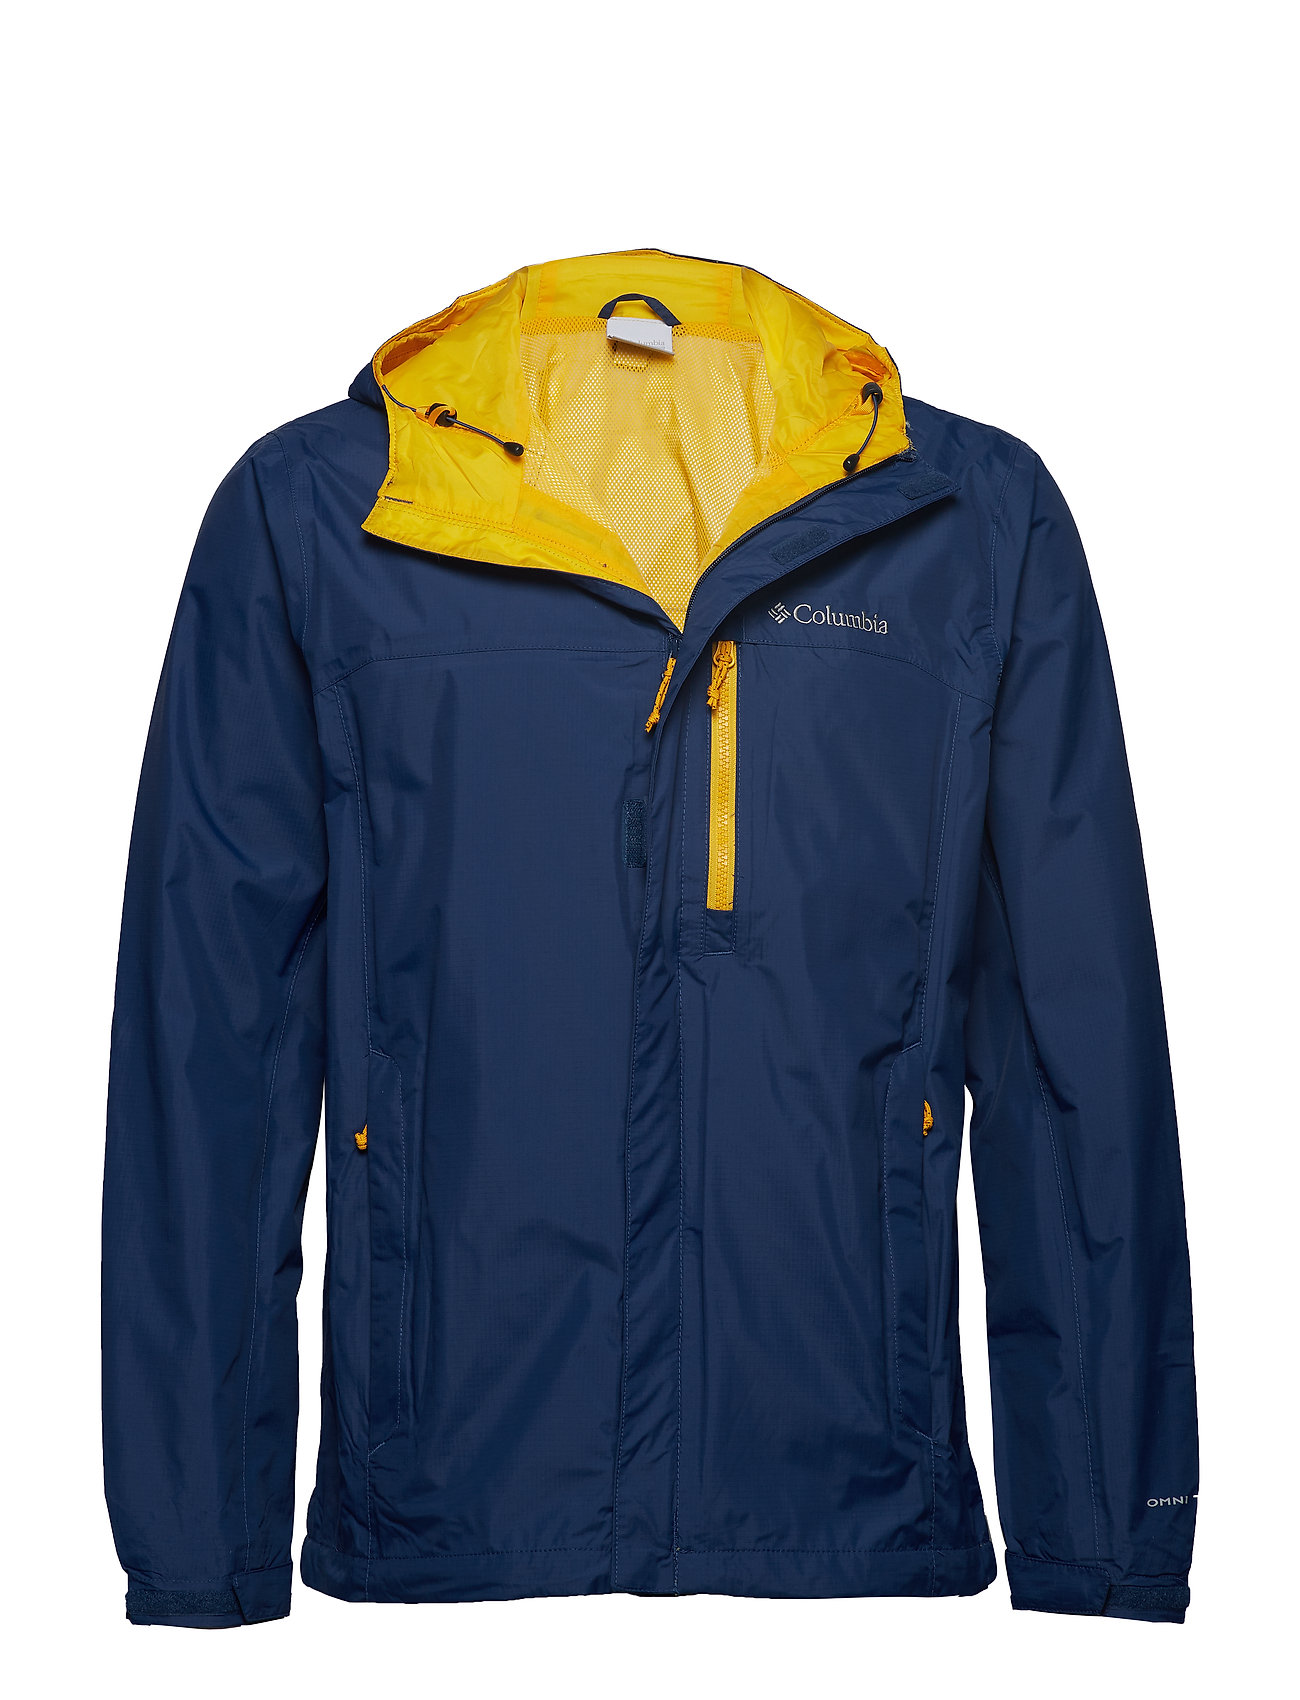 Columbia Pouring Adventure™ II Jacket - CARBON